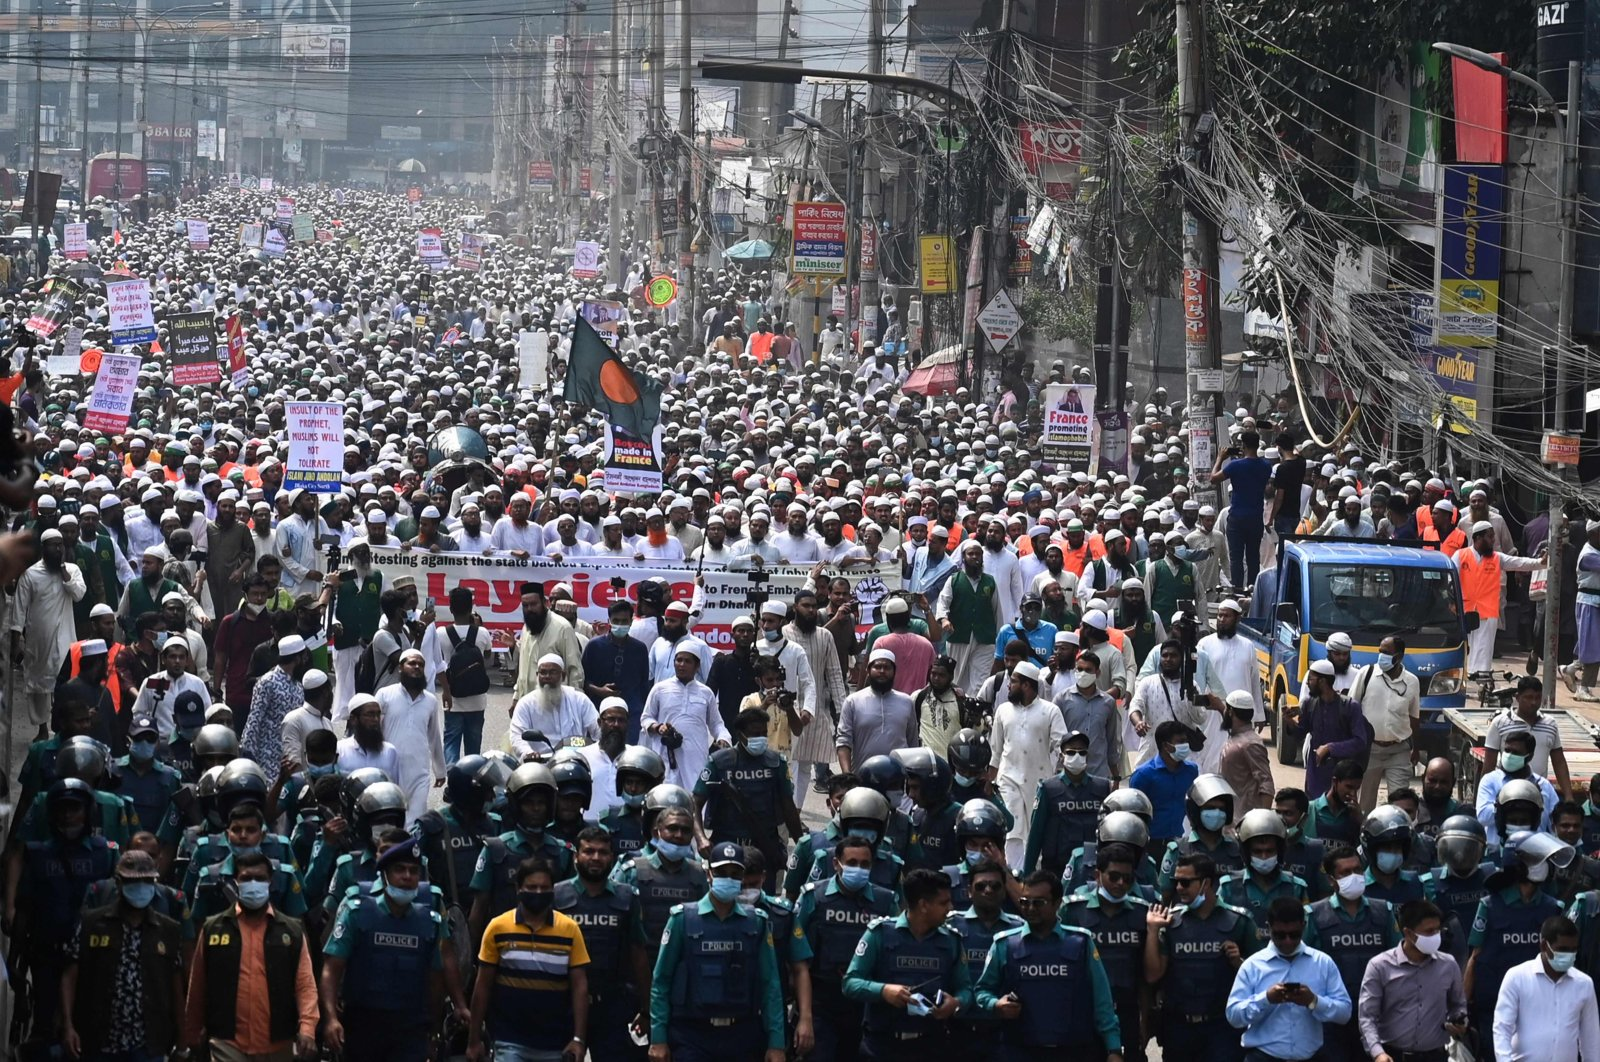 Protesters march to call for the boycott of French products and to denounce French president Emmanuel Macron for his comments over caricatures of the Prophet Muhammad in Dhaka, Bangladesh, Oct. 27, 2020. (AFP Photo)